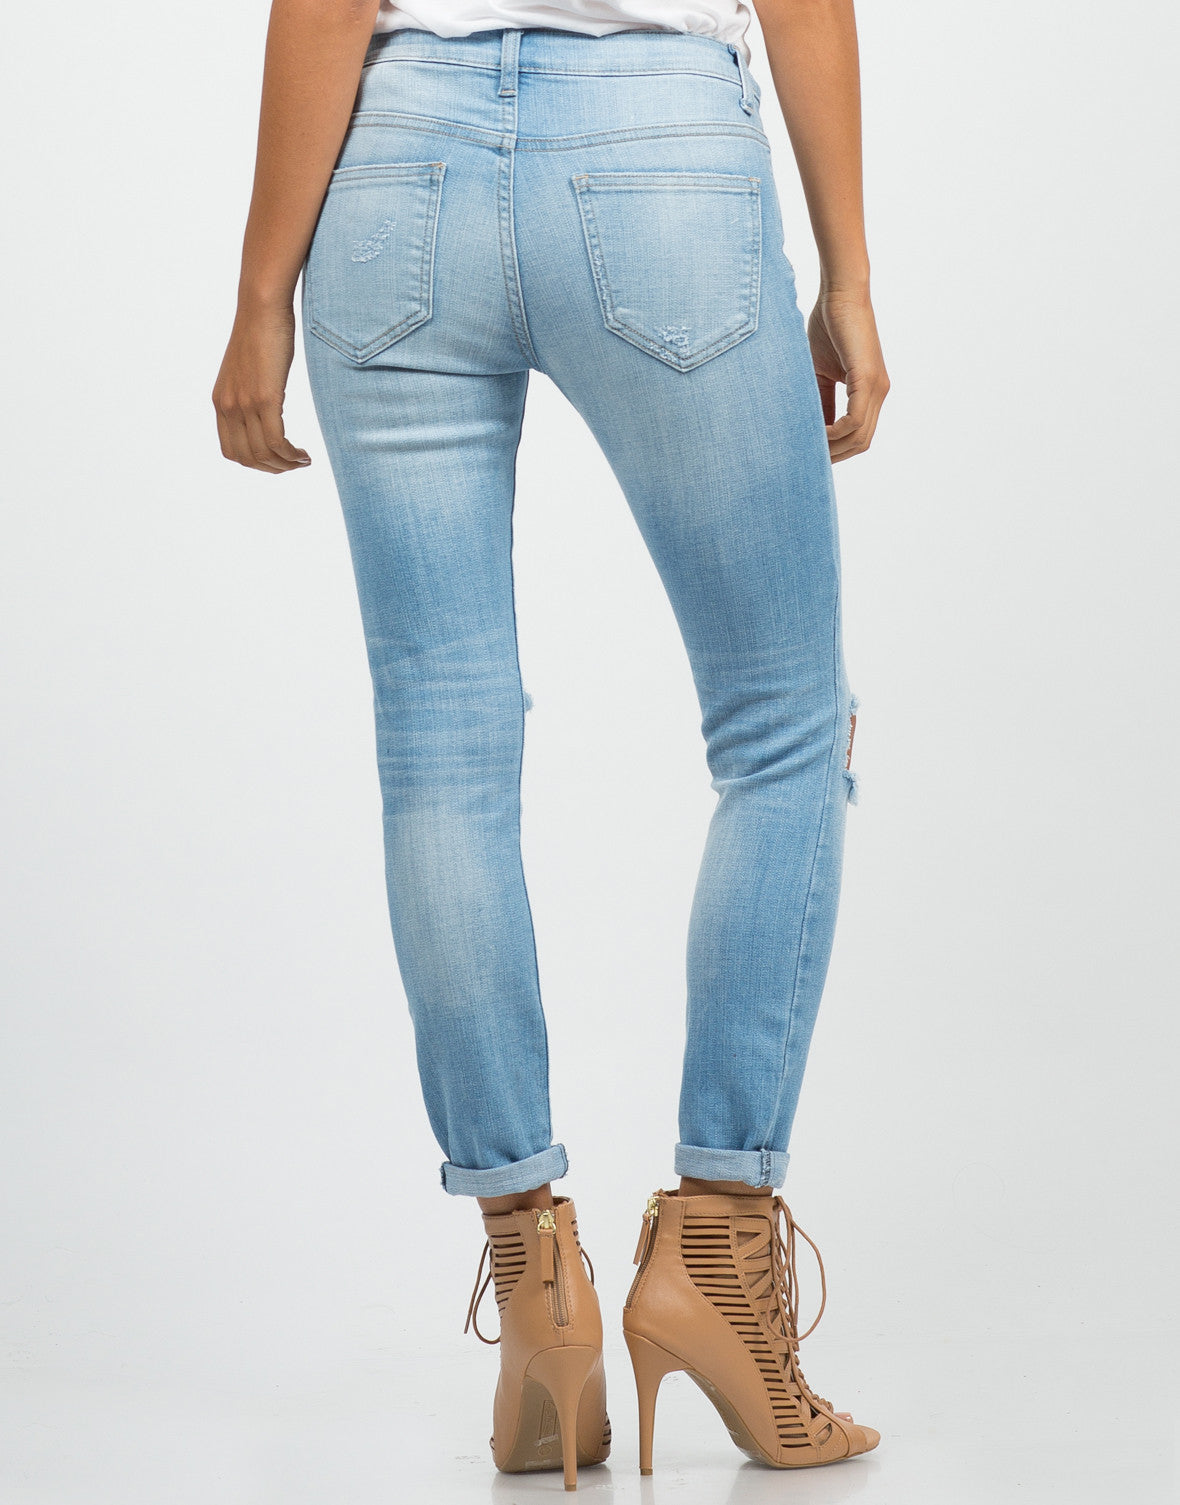 Back View of Crop Knee Cut Out Skinny Jeans